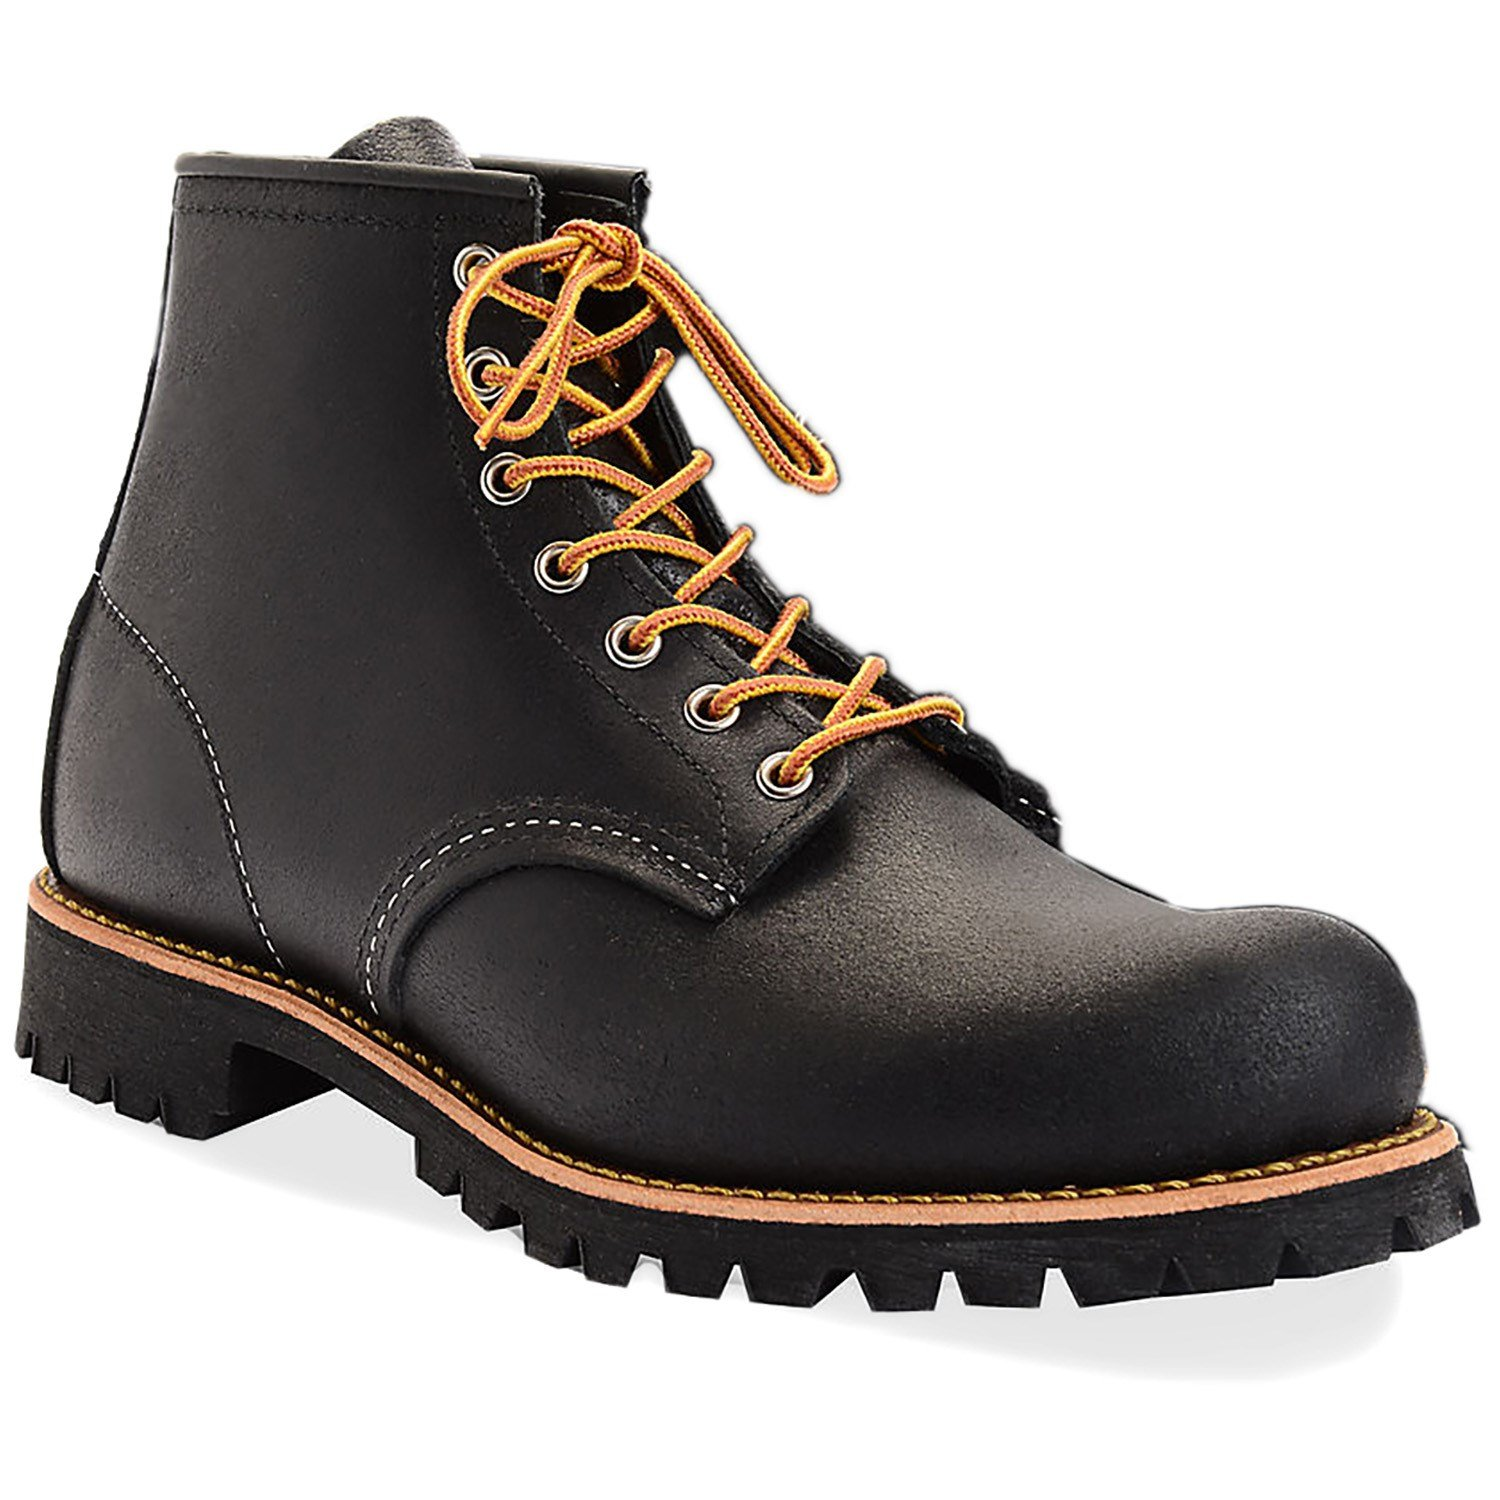 Red Wing Roughneck Round Toe Boots | evo